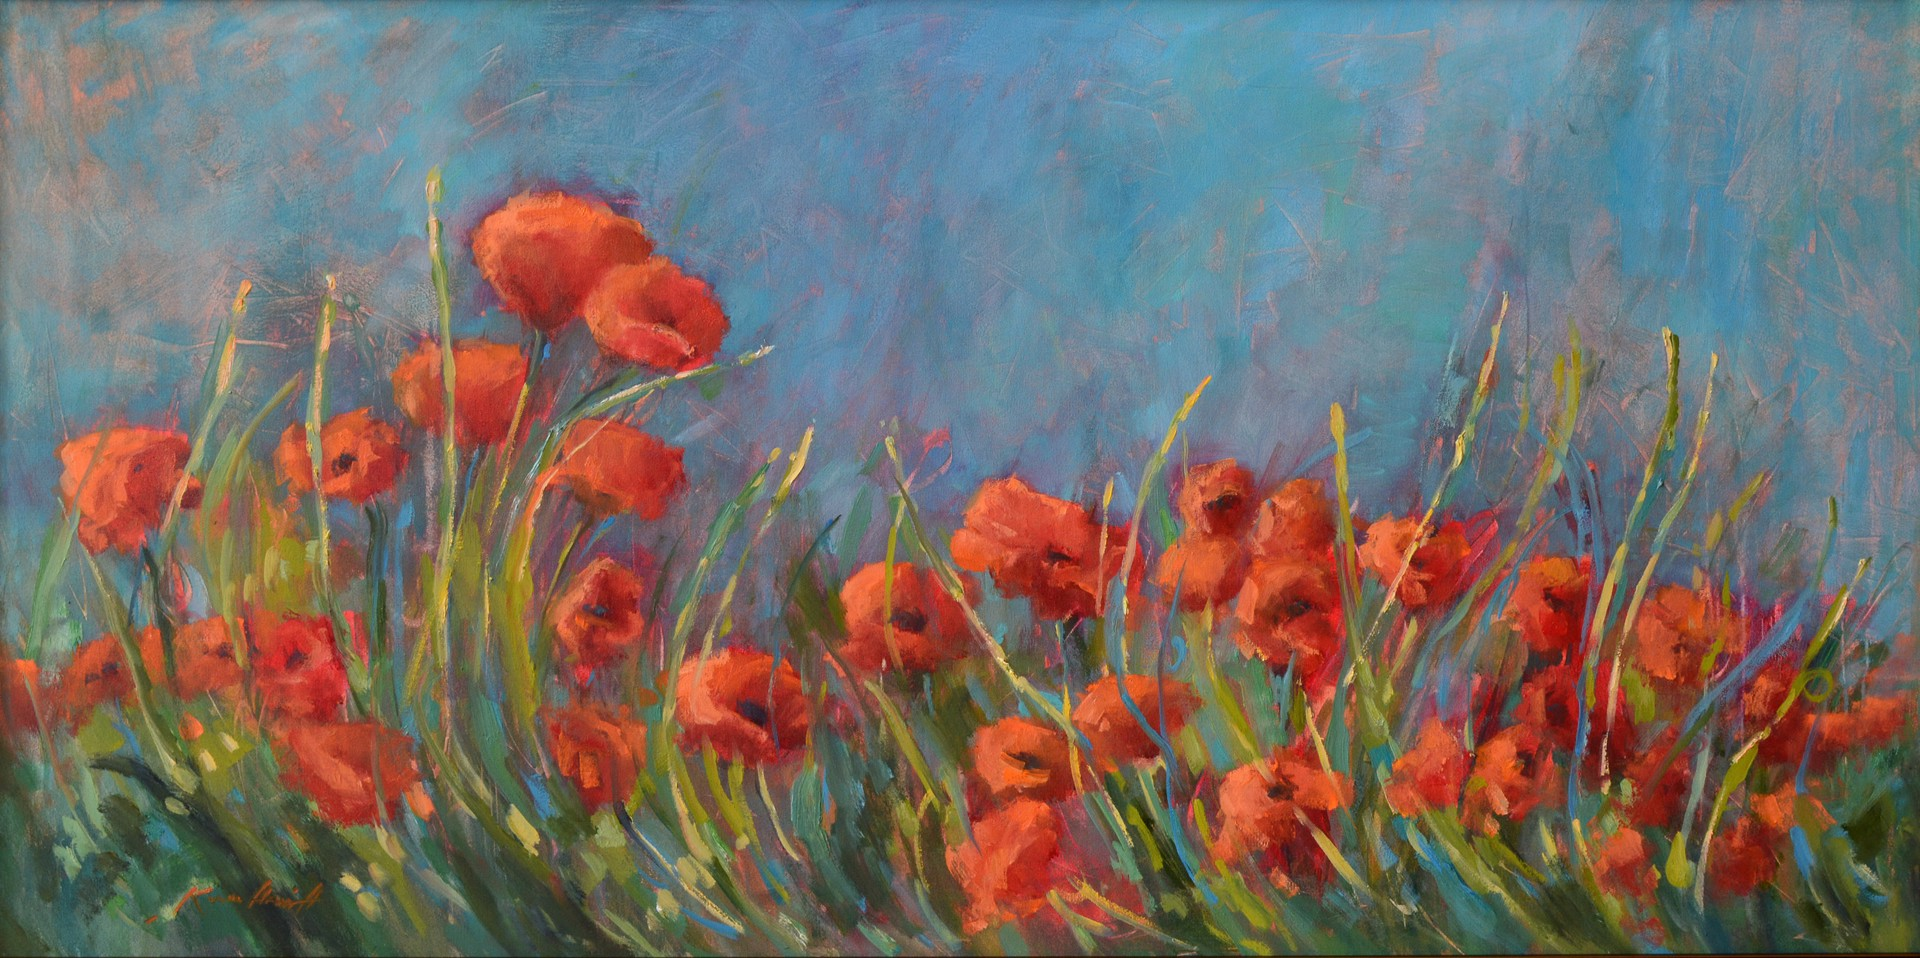 Untamed (Tuscan Poppies) by Karen Hewitt Hagan